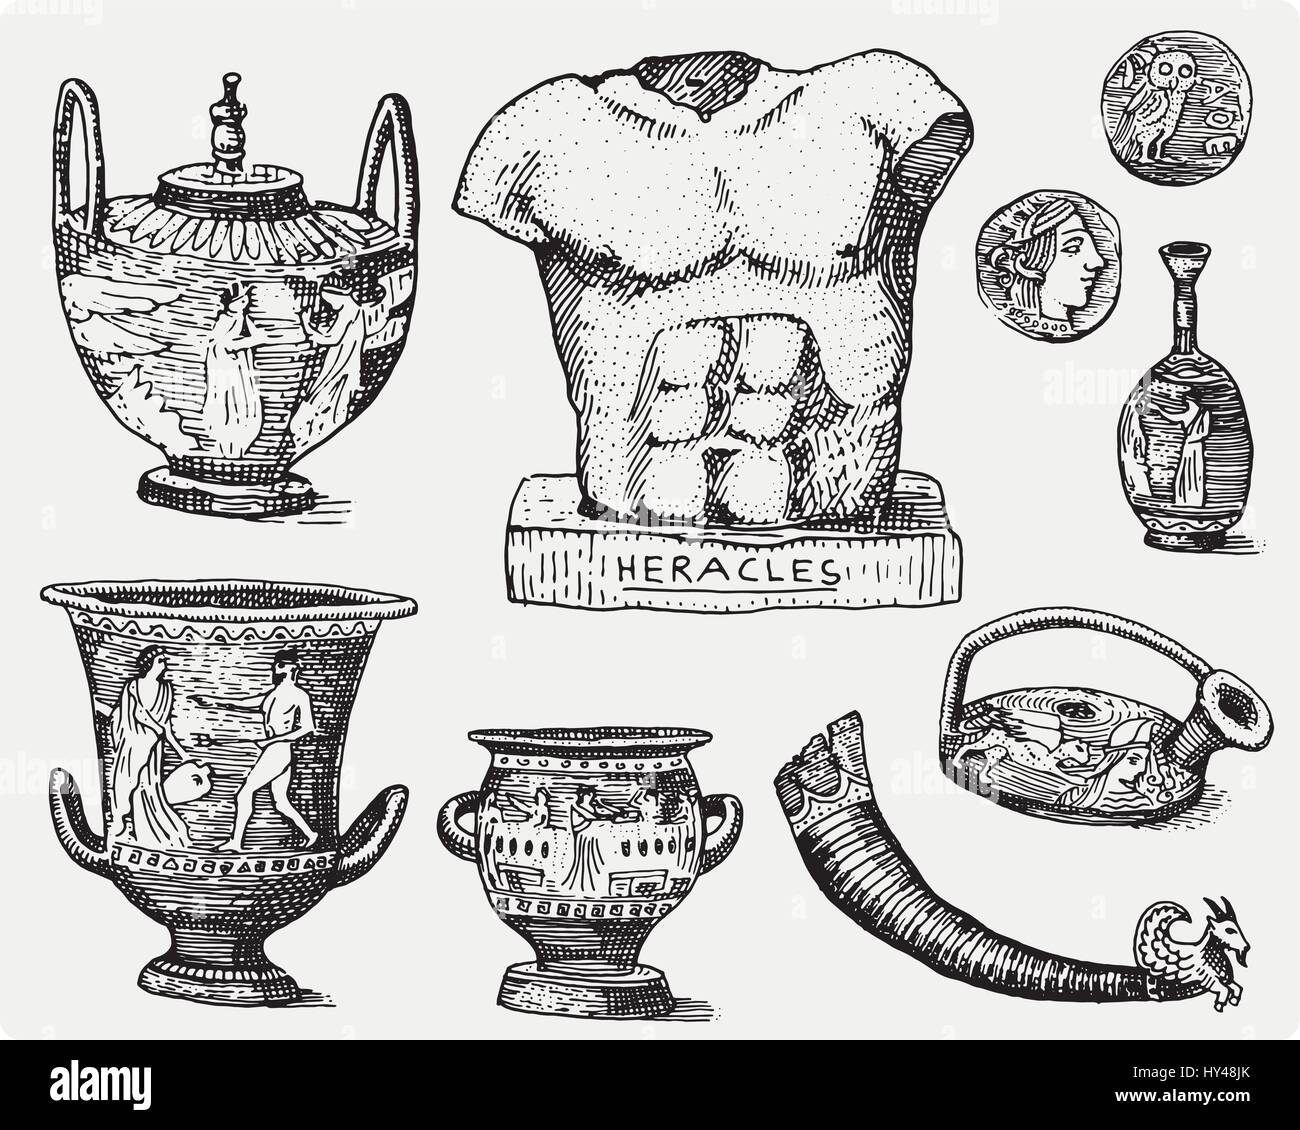 Ancient greece antique symbols greek coins heracles sculpture ancient greece antique symbols greek coins heracles sculpture anphora vintage engraved hand drawn in sketch or wood cut style old looking retro biocorpaavc Images